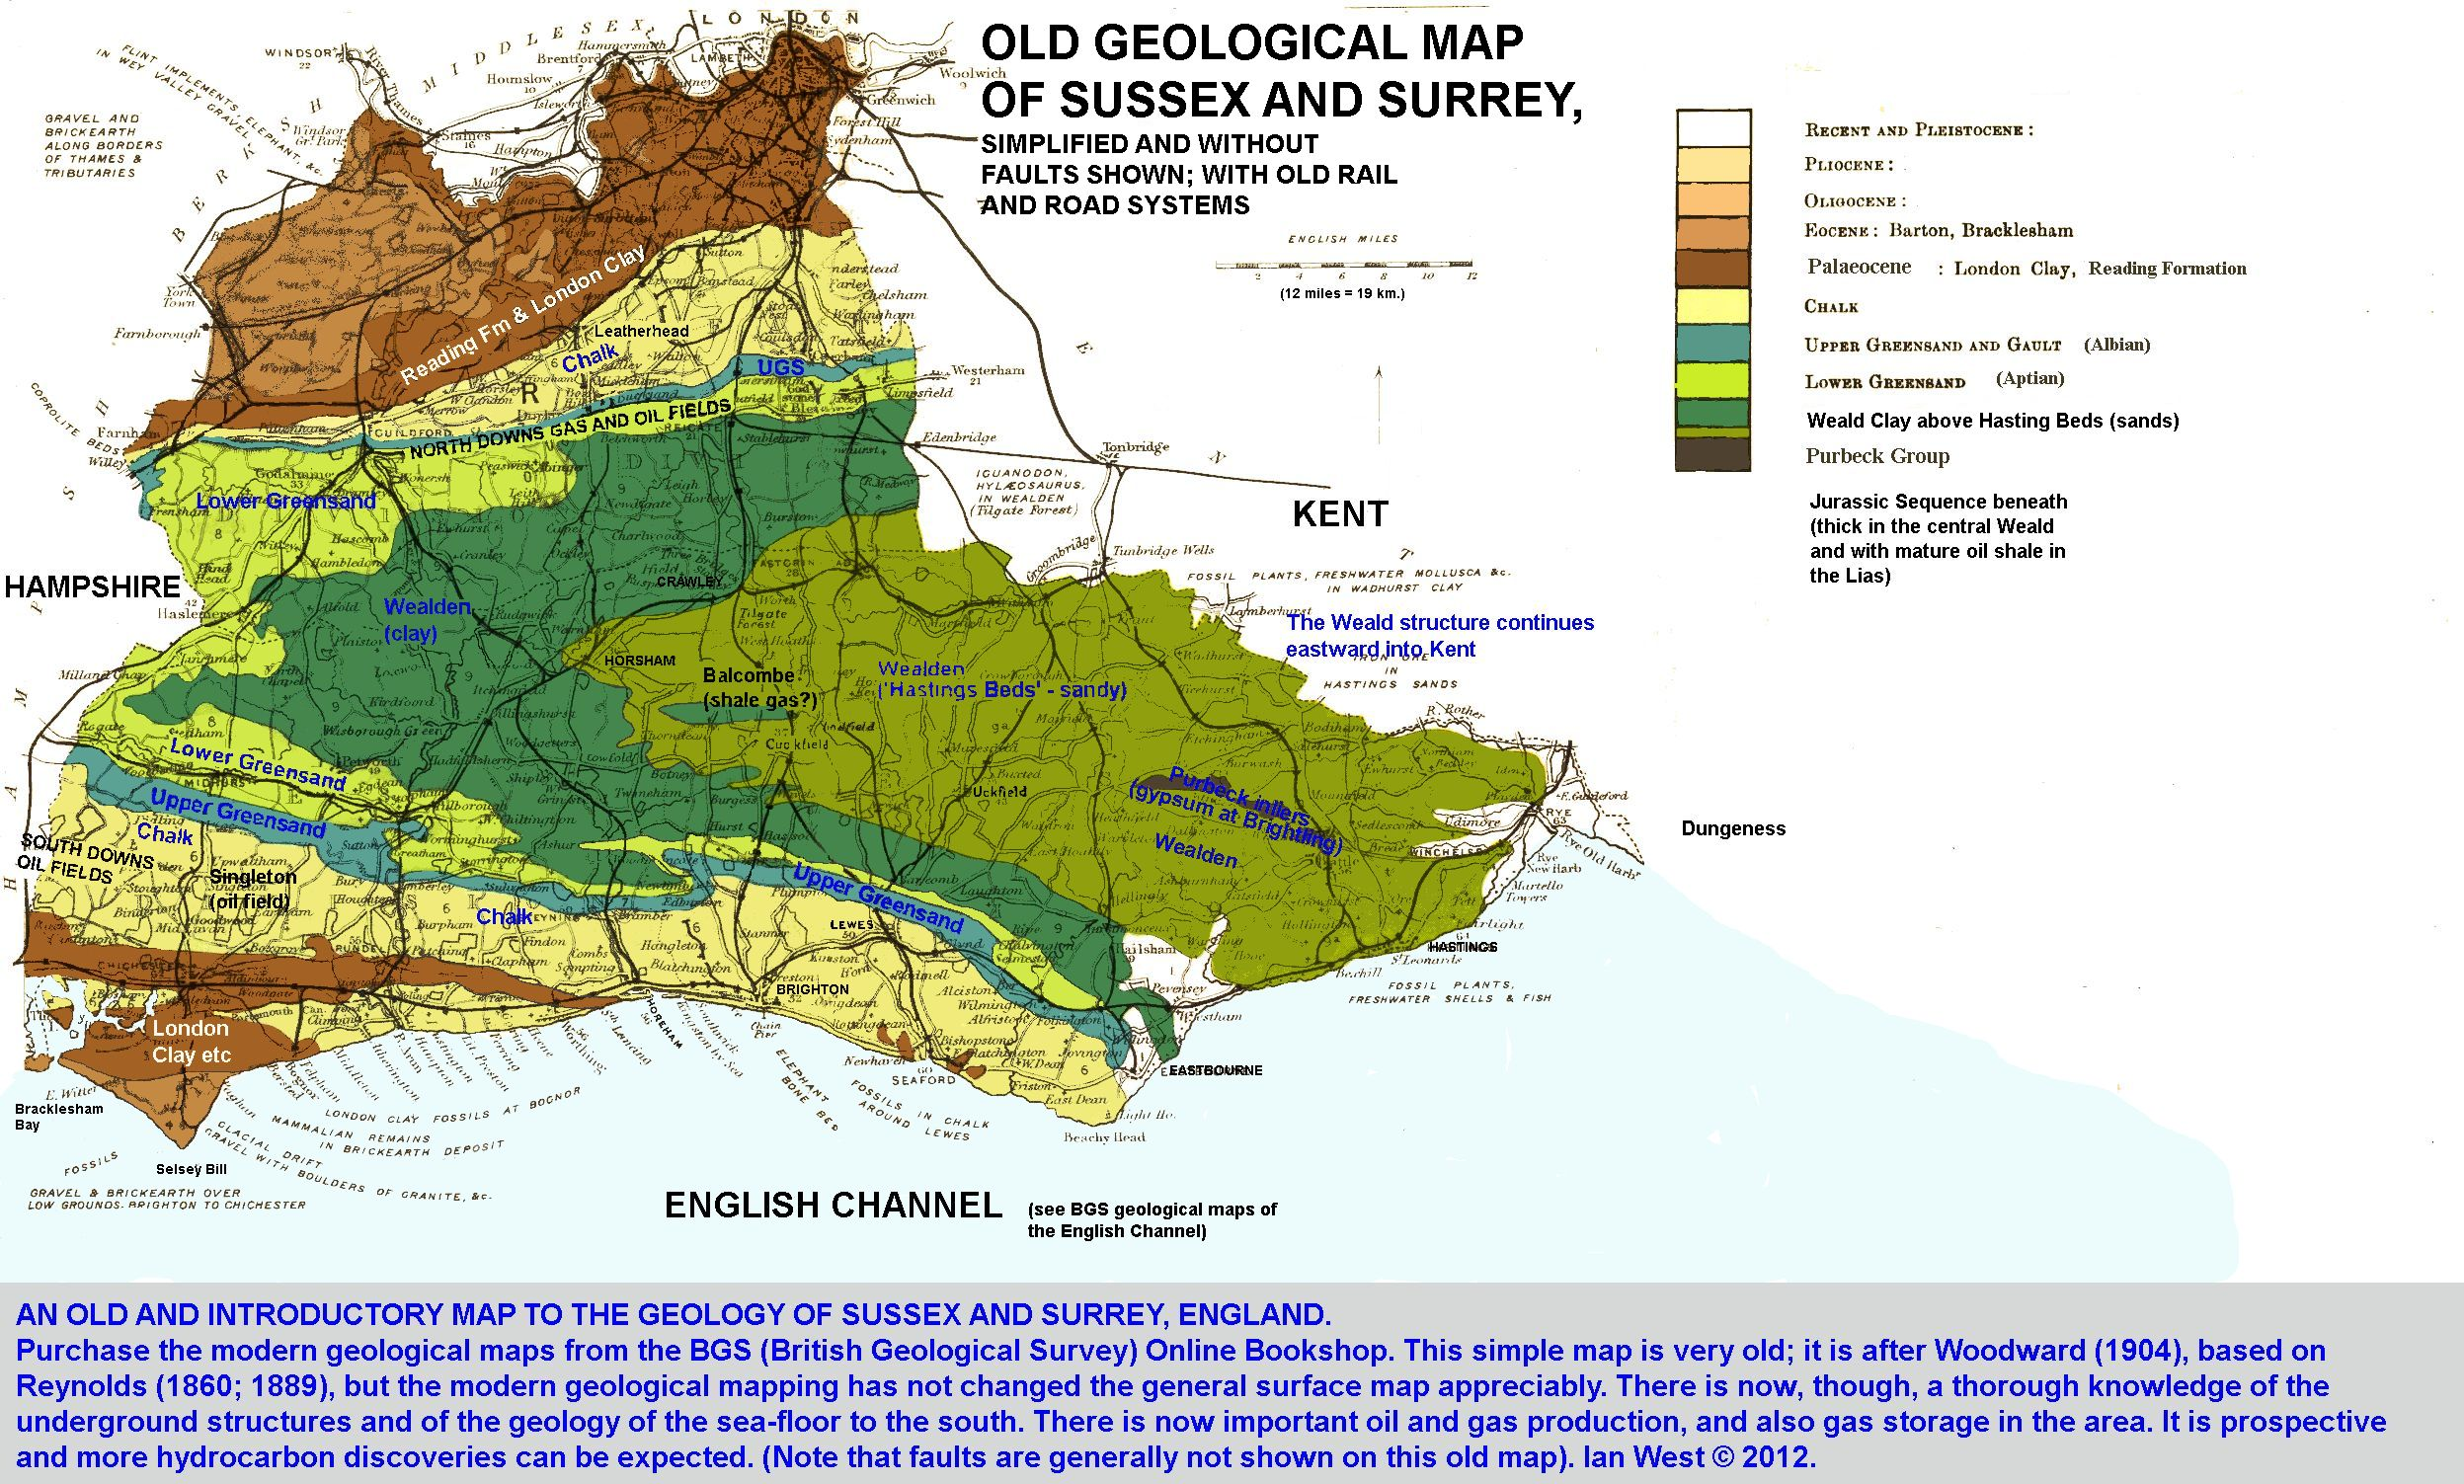 old simplified geological map of sussex and surrey with some additional notes regarding oil